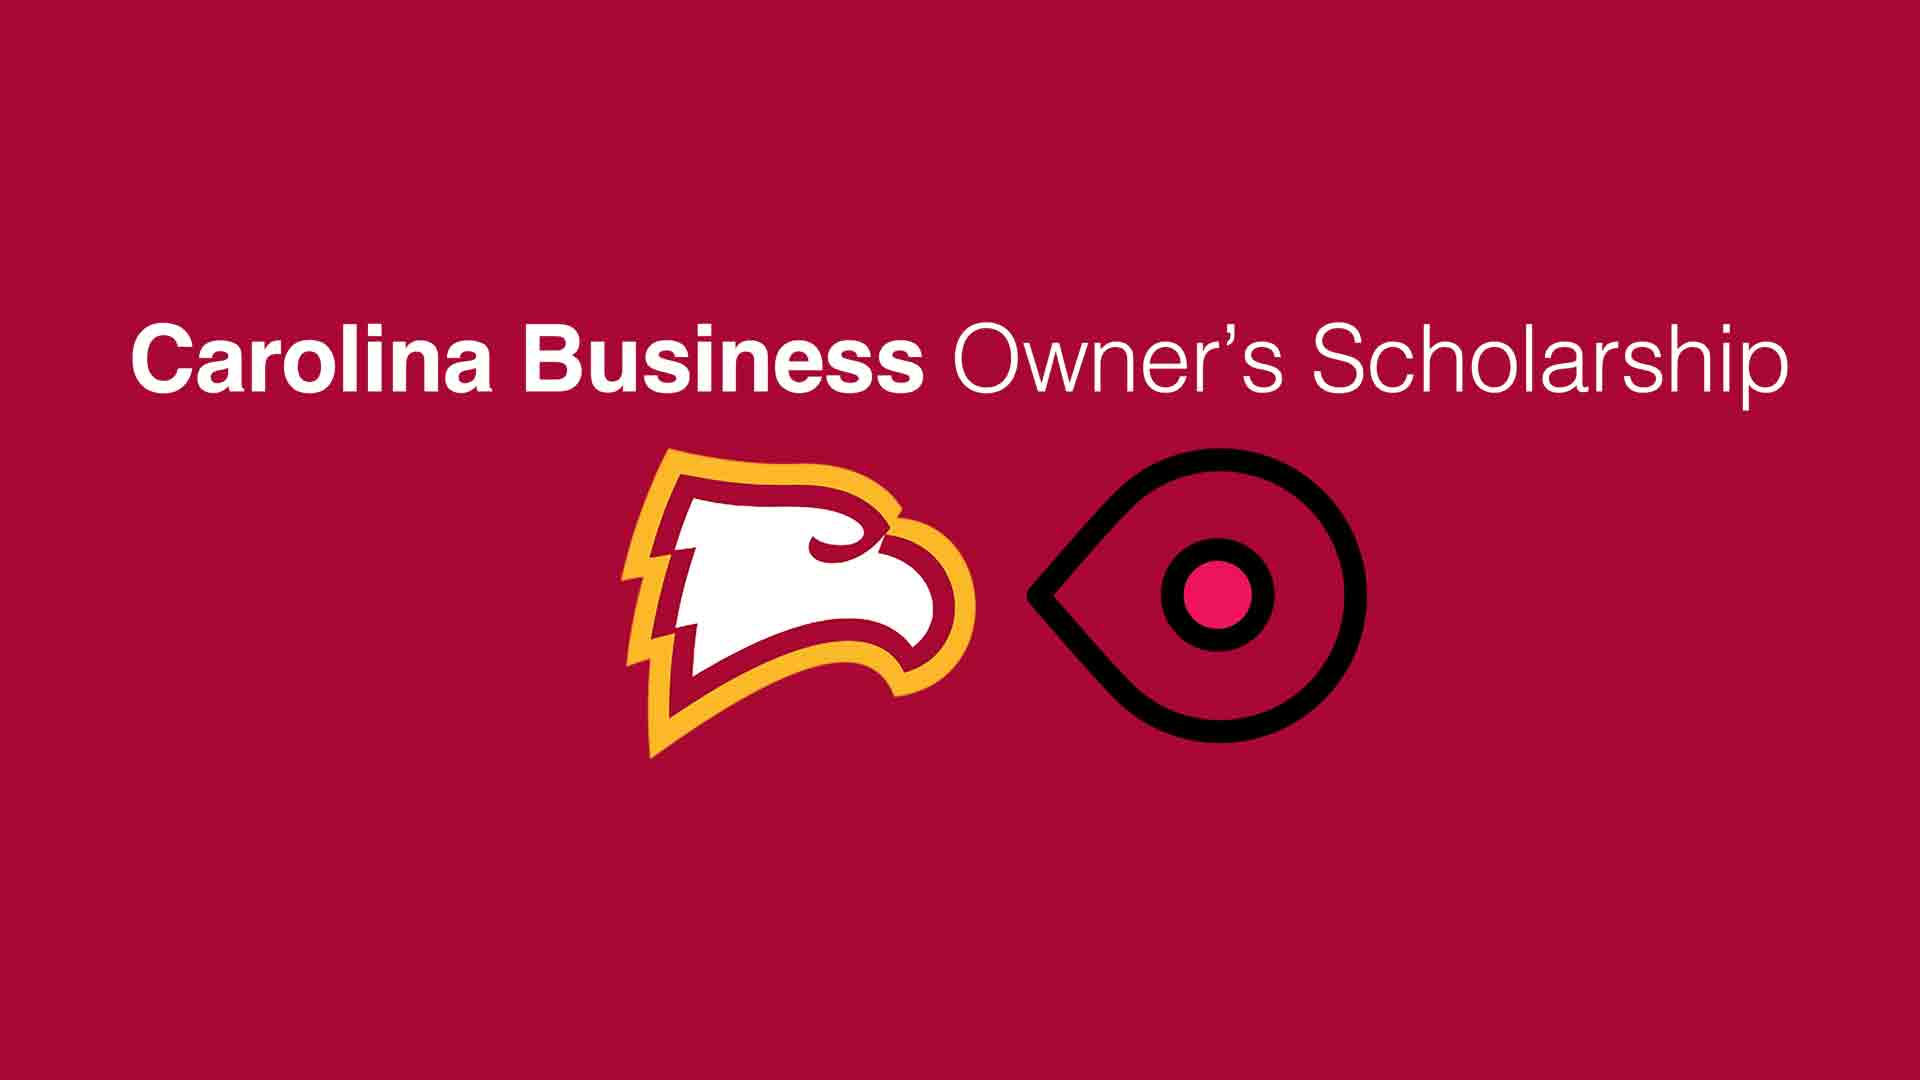 Carolina Business Owners Scholarship - 360 Visuals - Charlotte, NC